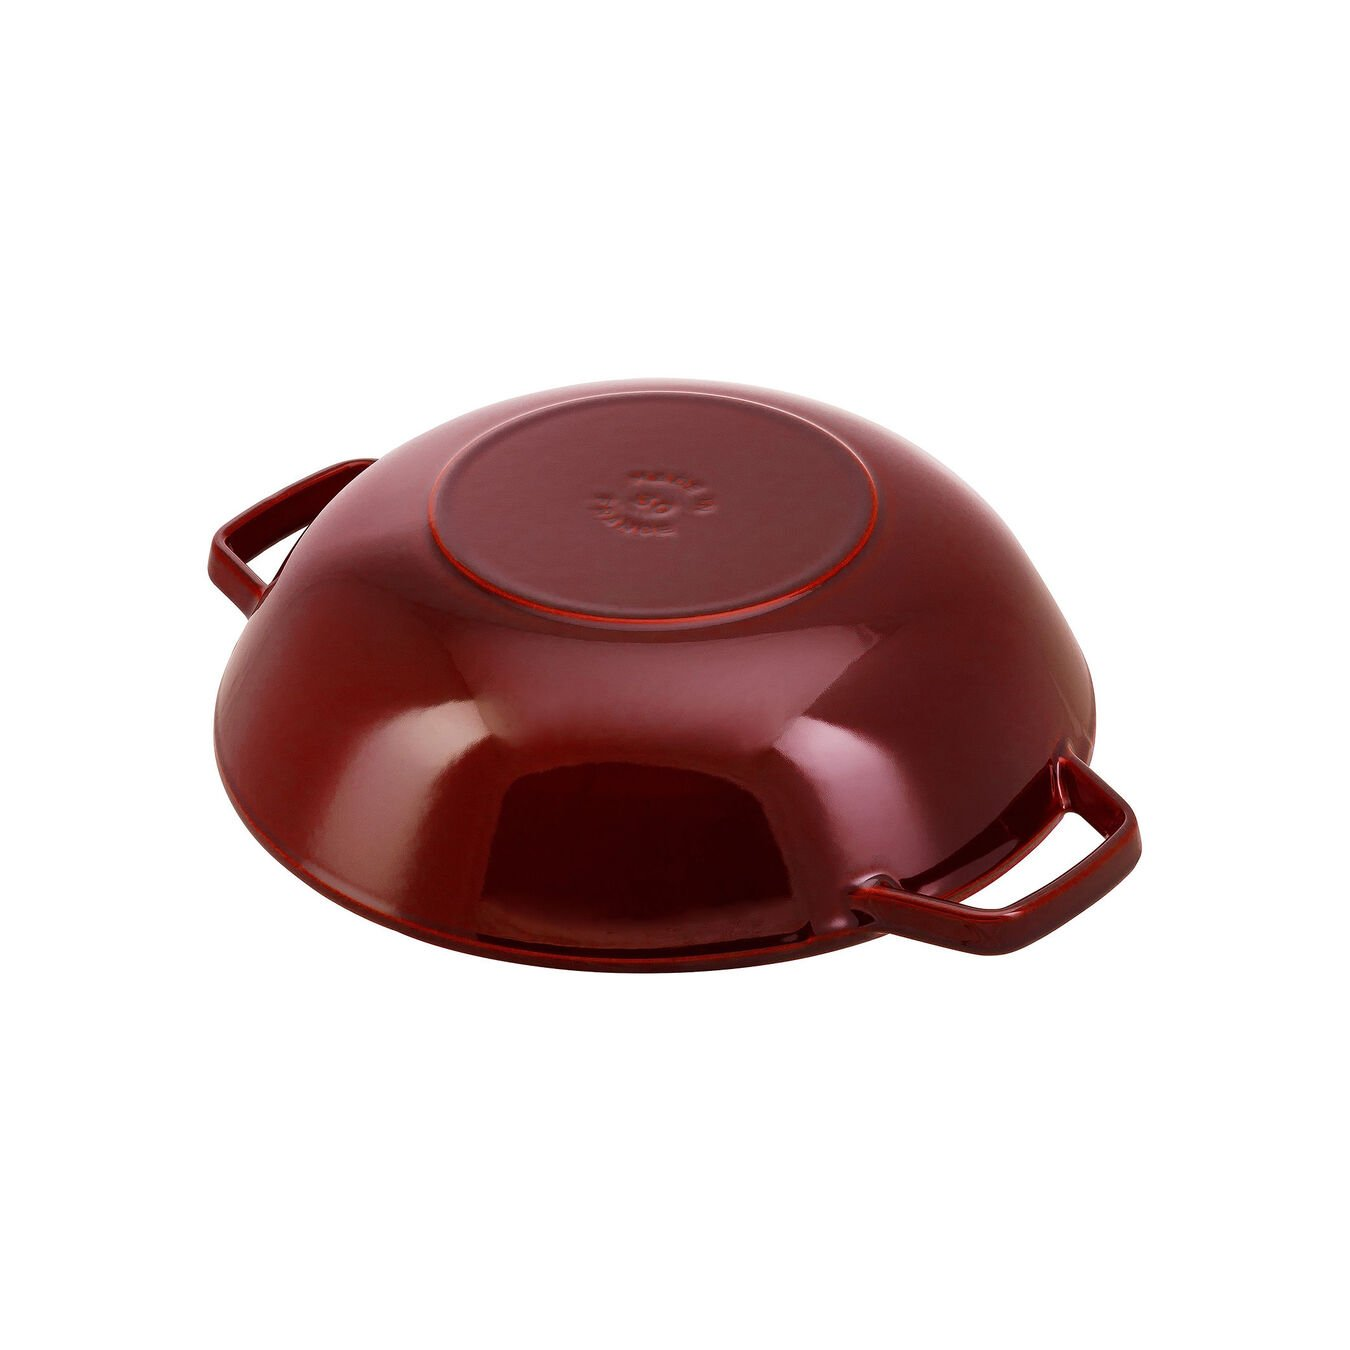 30 cm / 12 inch Cast iron Wok with glass lid, Grenadine-Red,,large 3